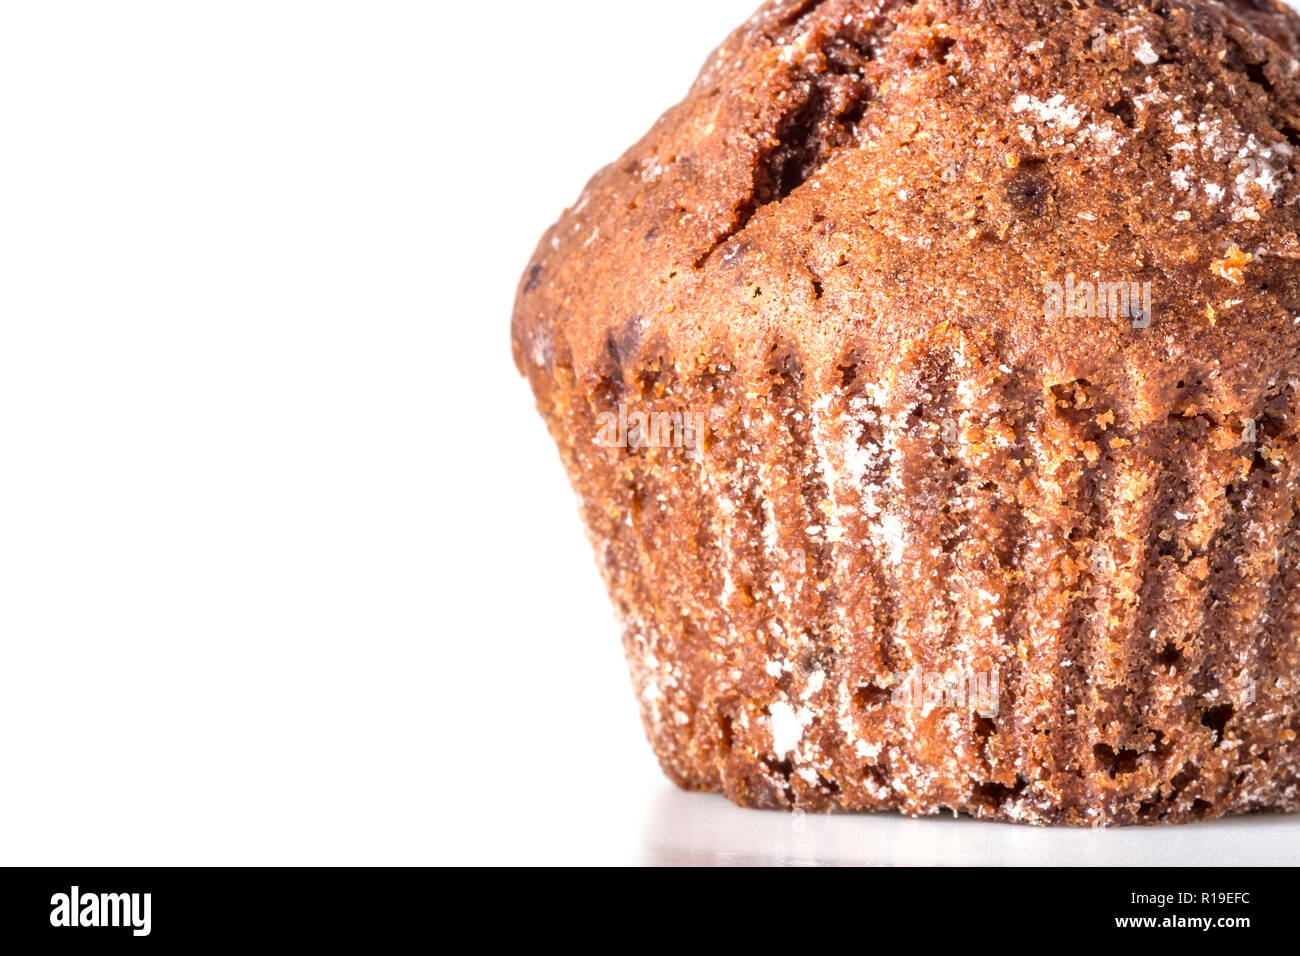 Gâteau au chocolat, muffin close-up macro avec un certain nombre de miettes isolé sur fond blanc Photo Stock